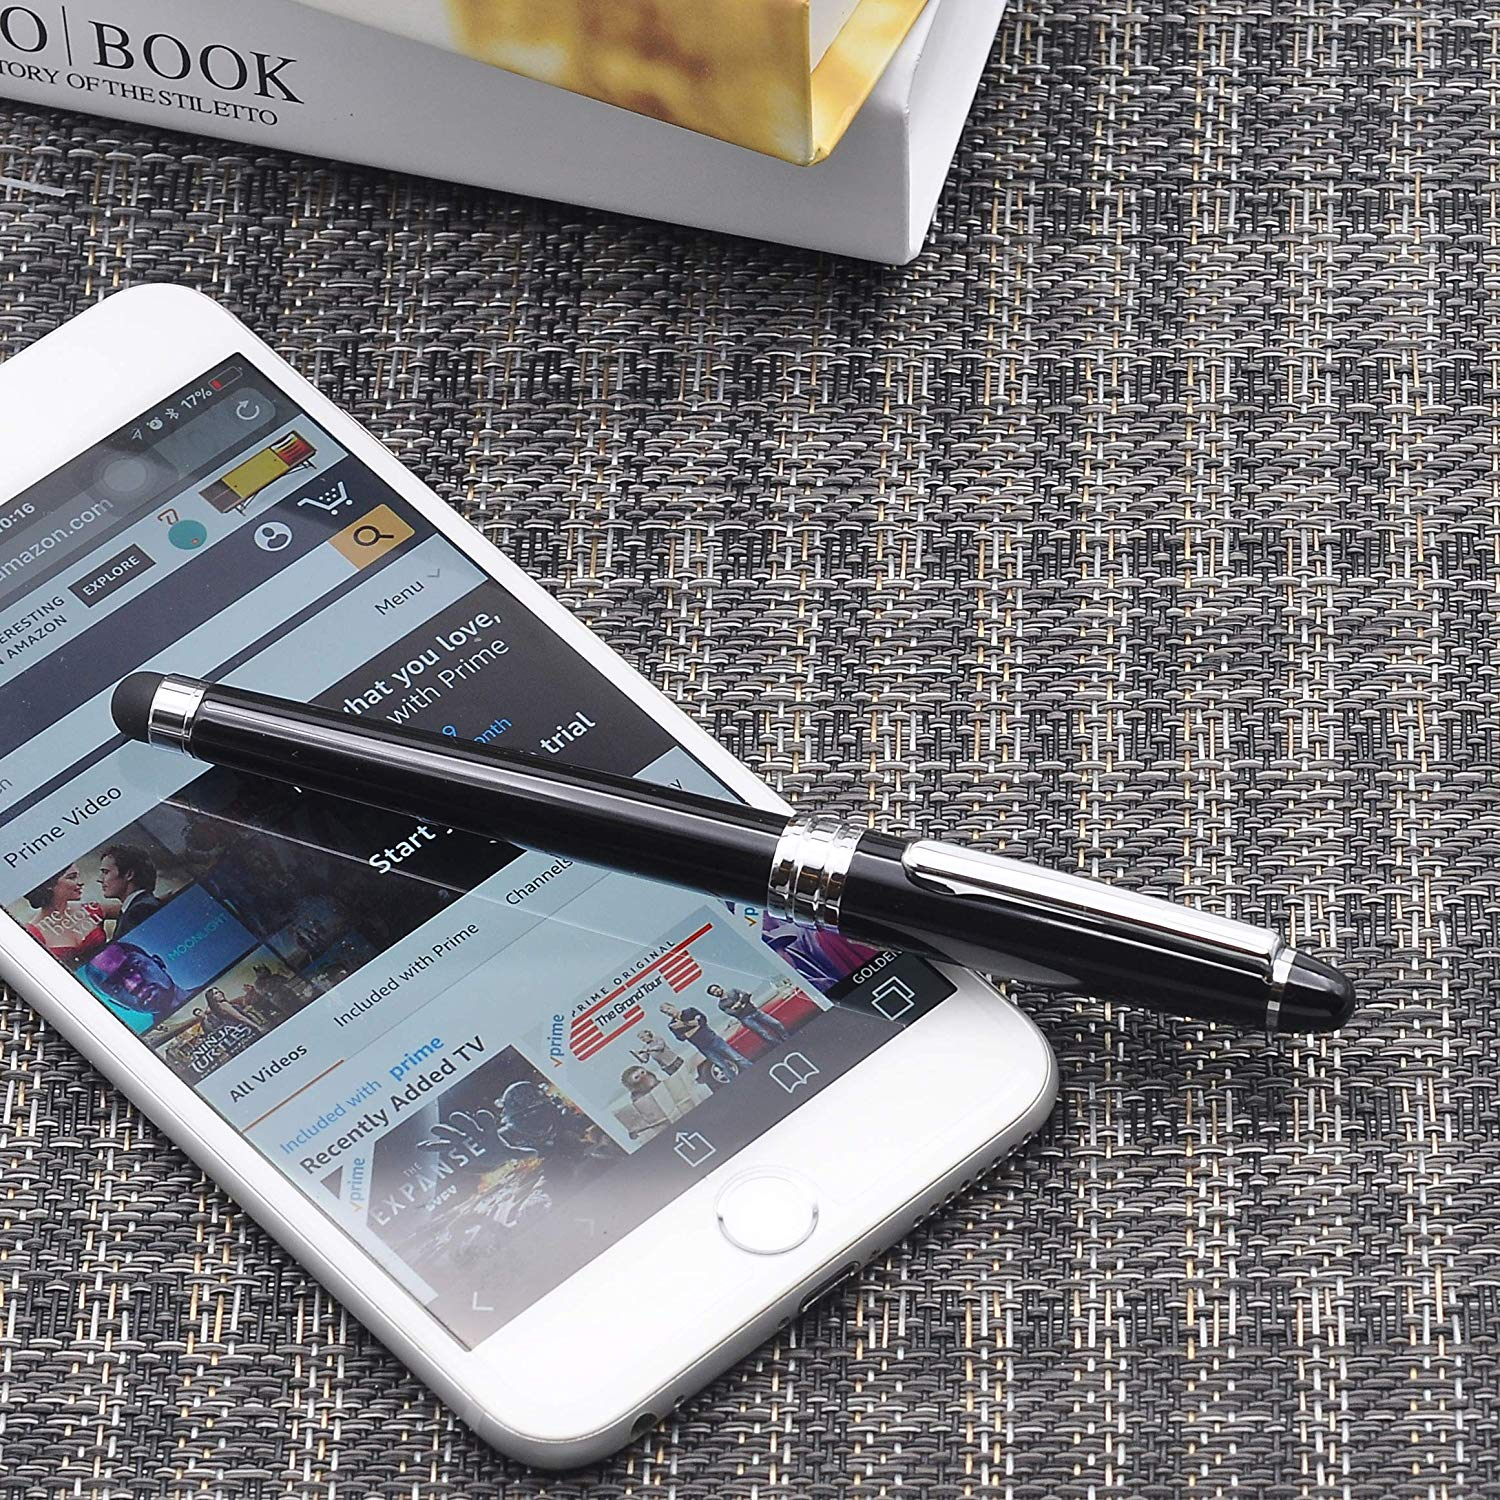 LACHIEVA Roller Pen with Touch Pen, Black Barrel, Classic Design, Germany Schneider Refill Black and Blue